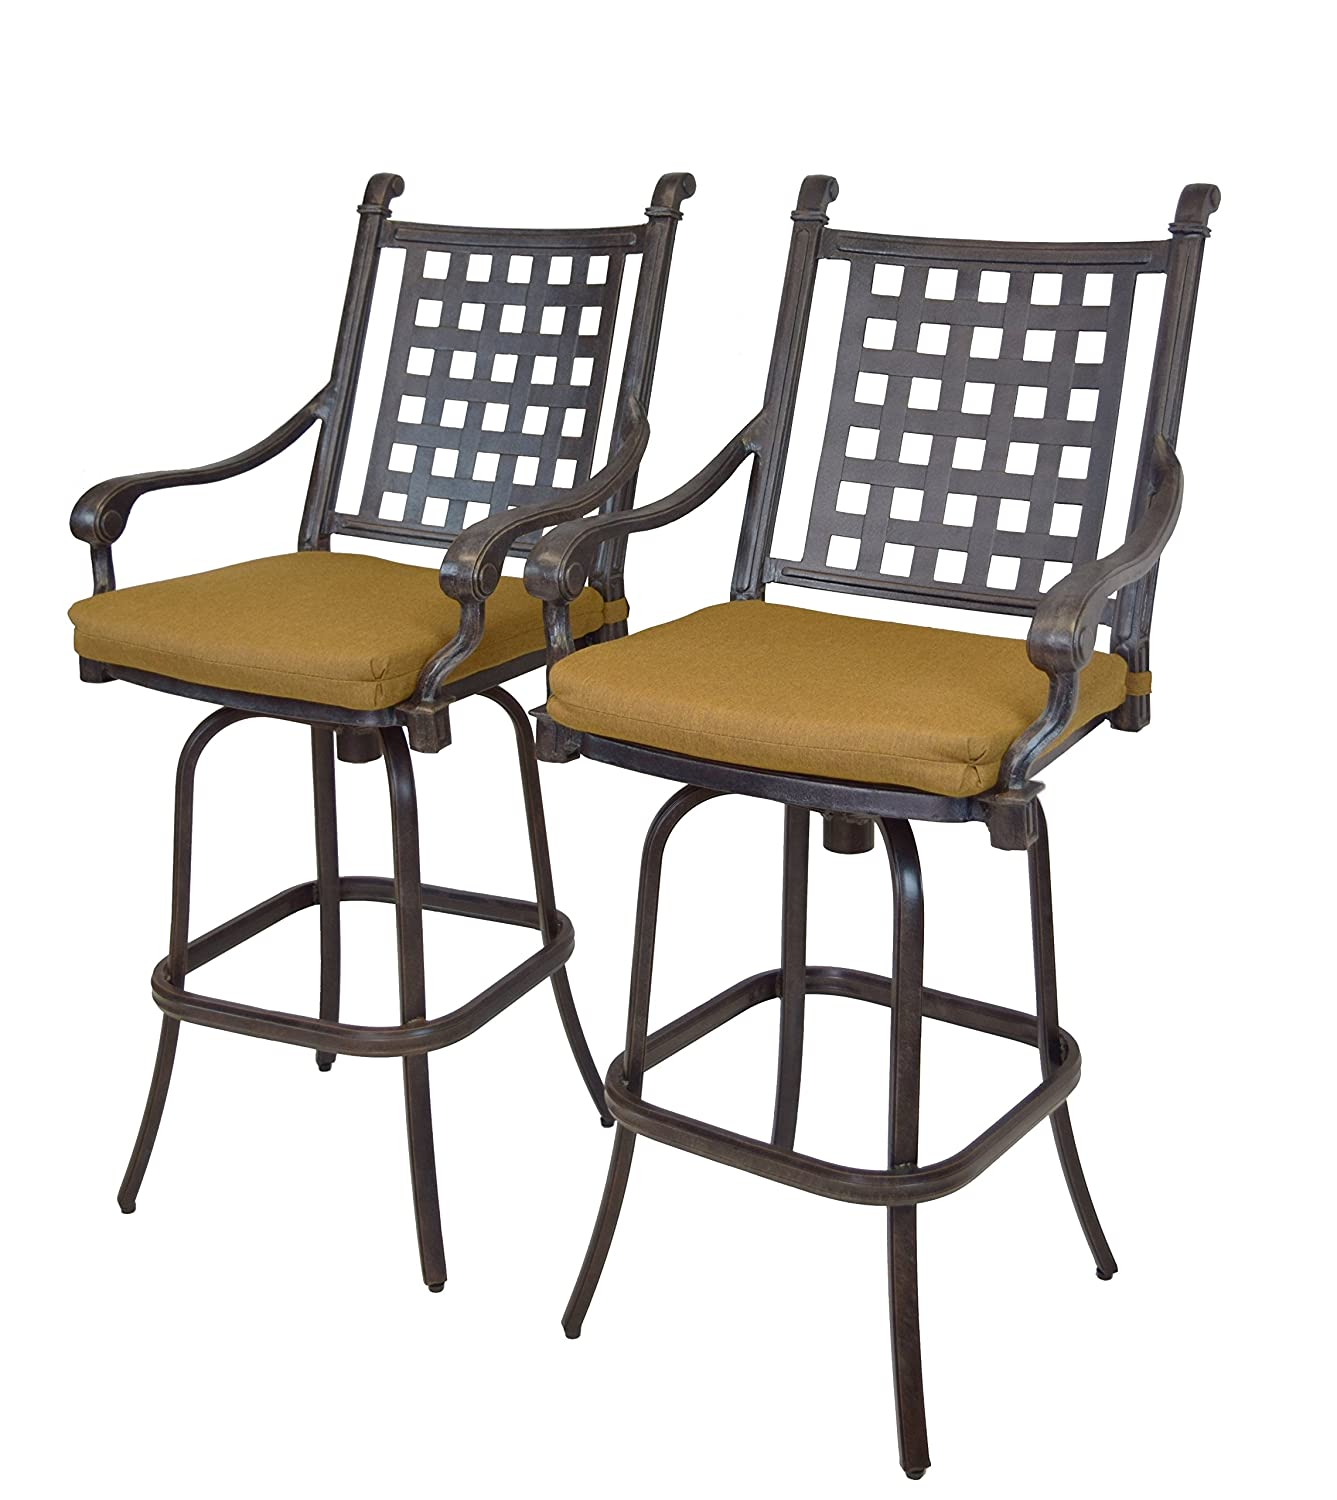 Outstanding Oakland Living 2 Piece Belmont Aluminum Swivel Bar Stool Set Aged Black Unemploymentrelief Wooden Chair Designs For Living Room Unemploymentrelieforg